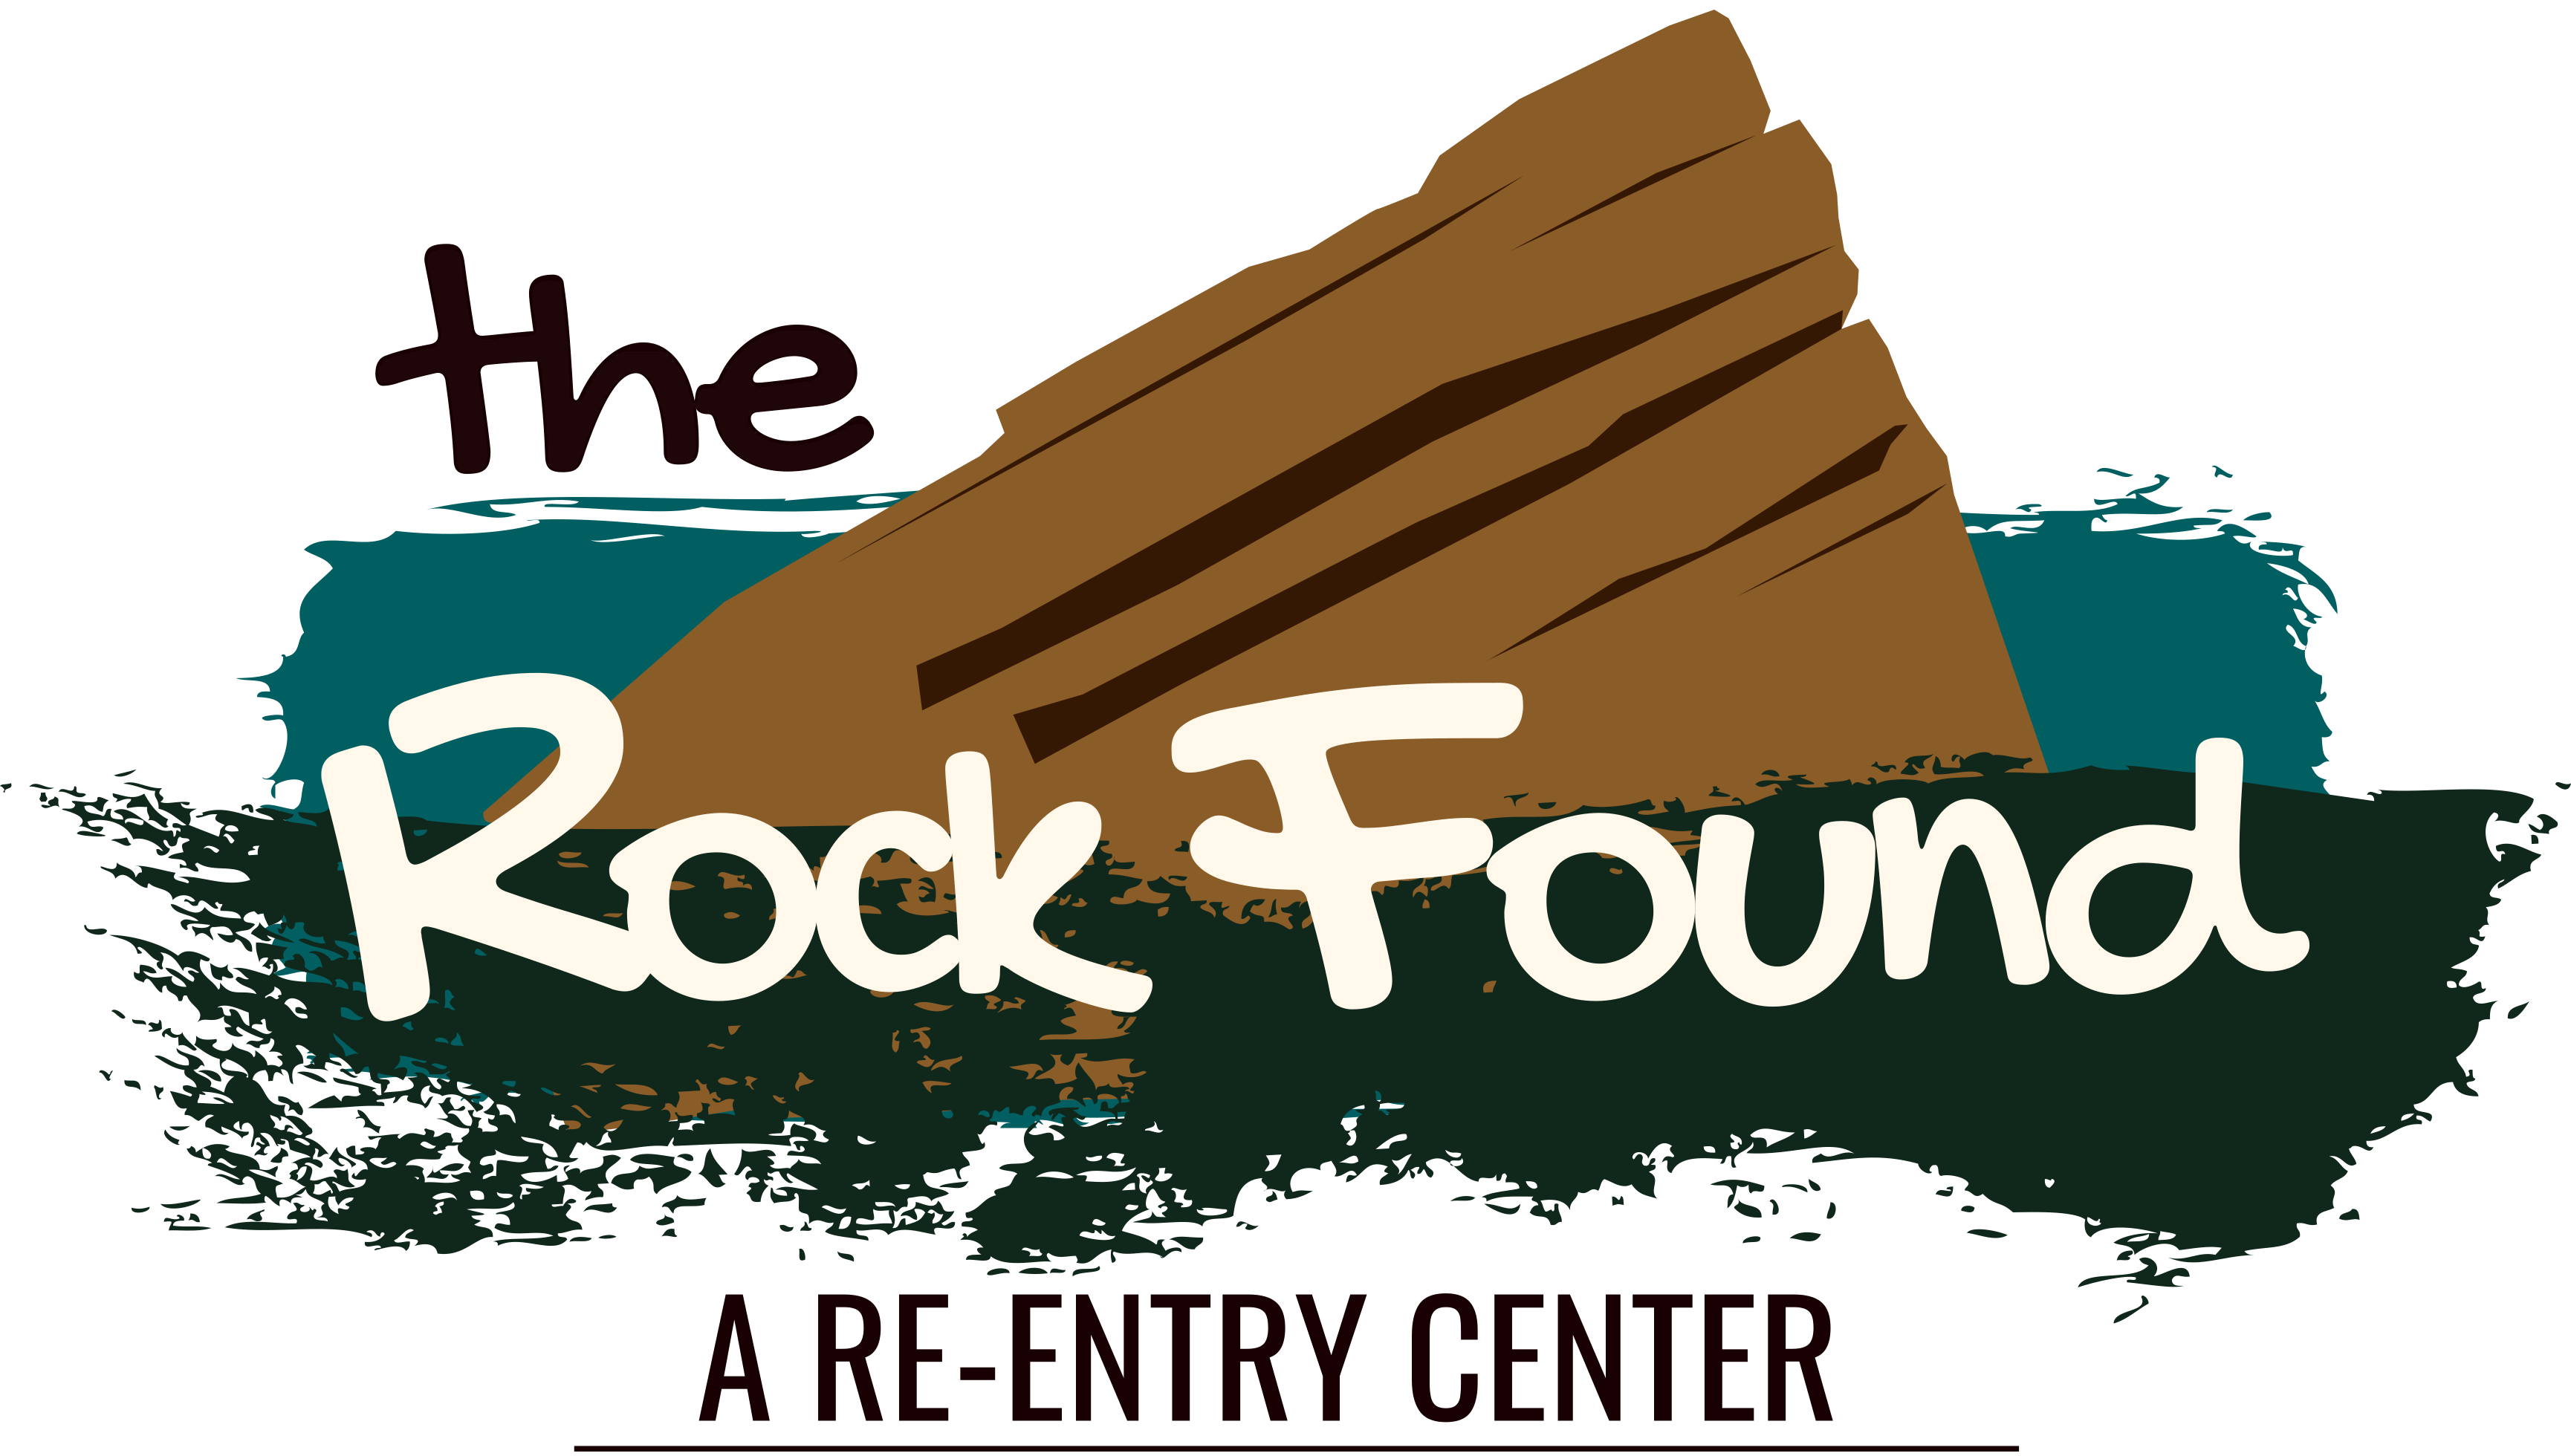 The Rock Found: A Reentry Community